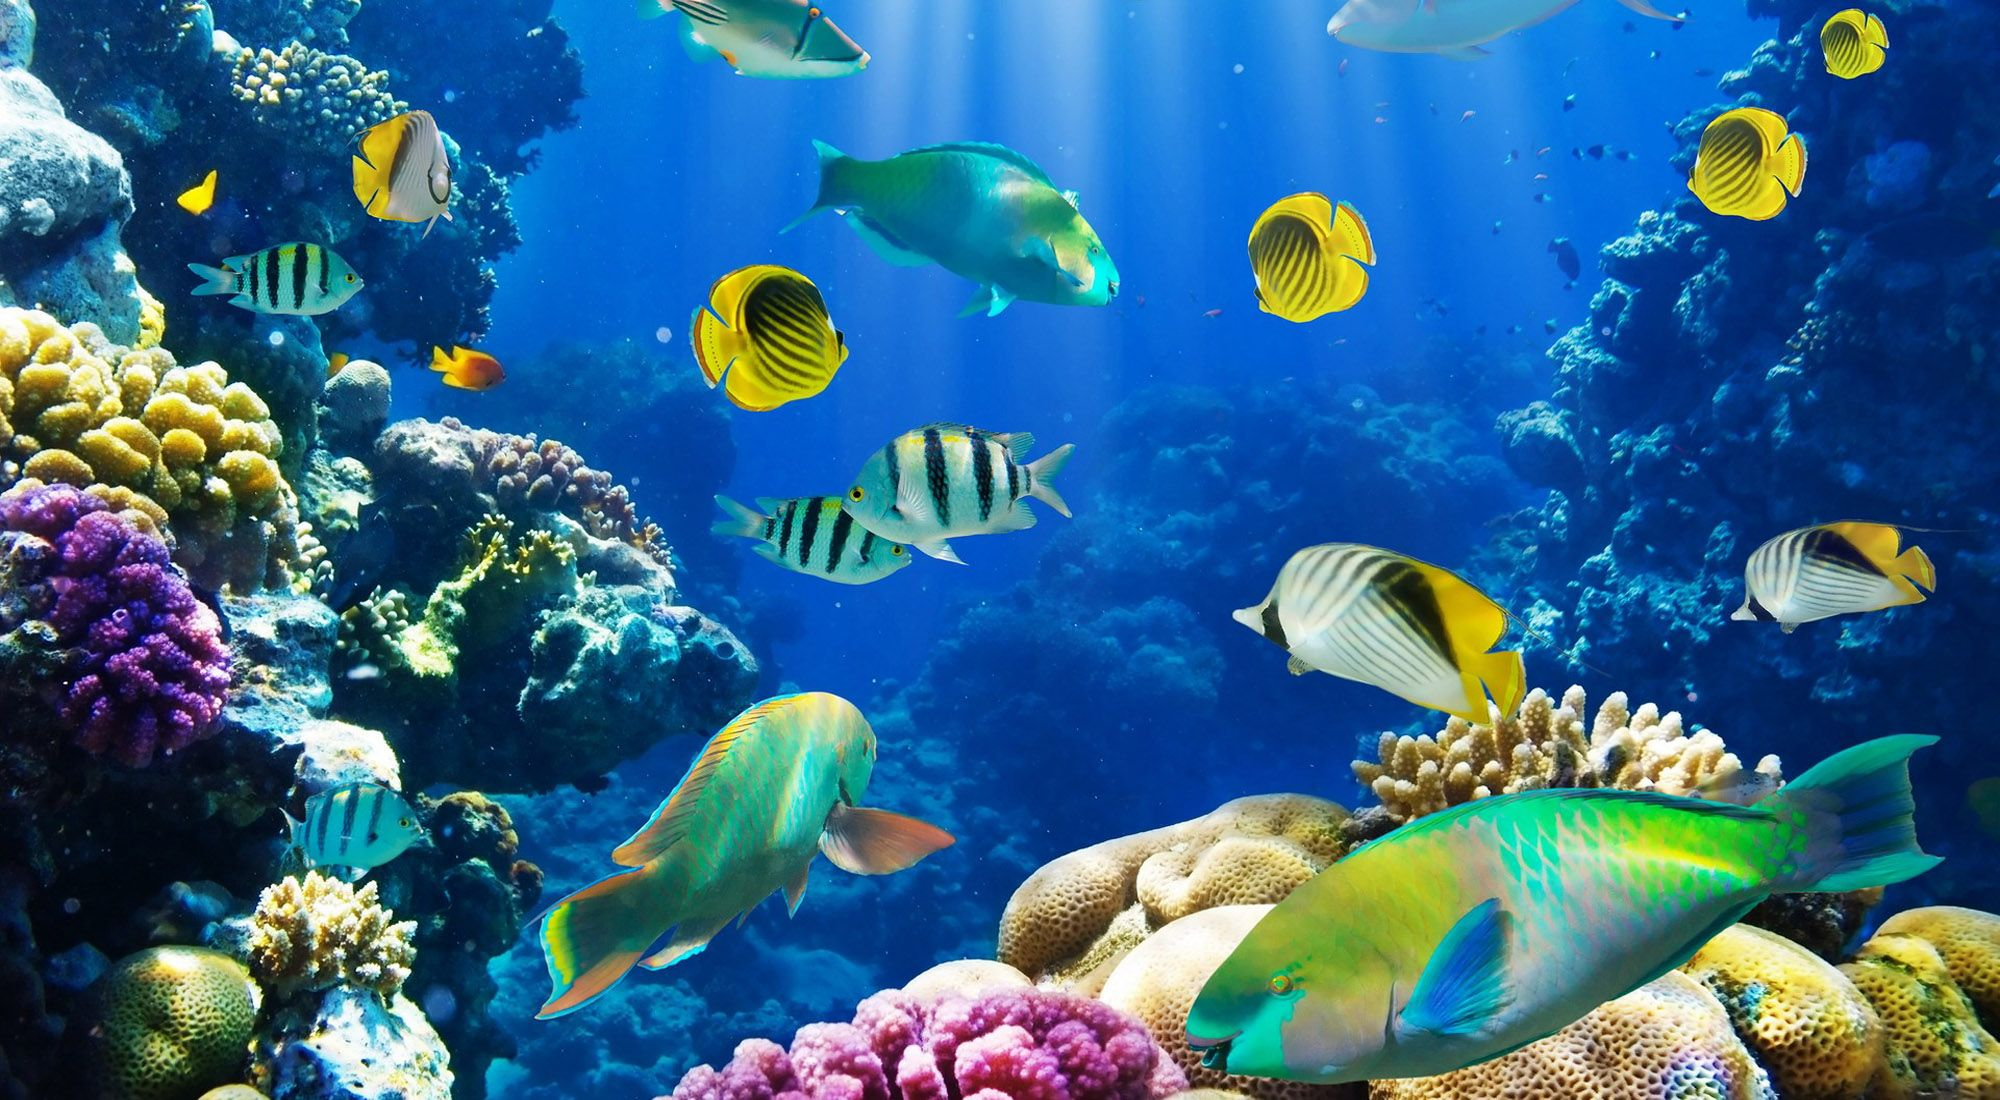 Hd Fish Wallpapers Underwater Wallpaper Fish Wallpaper Sea Life Wallpaper